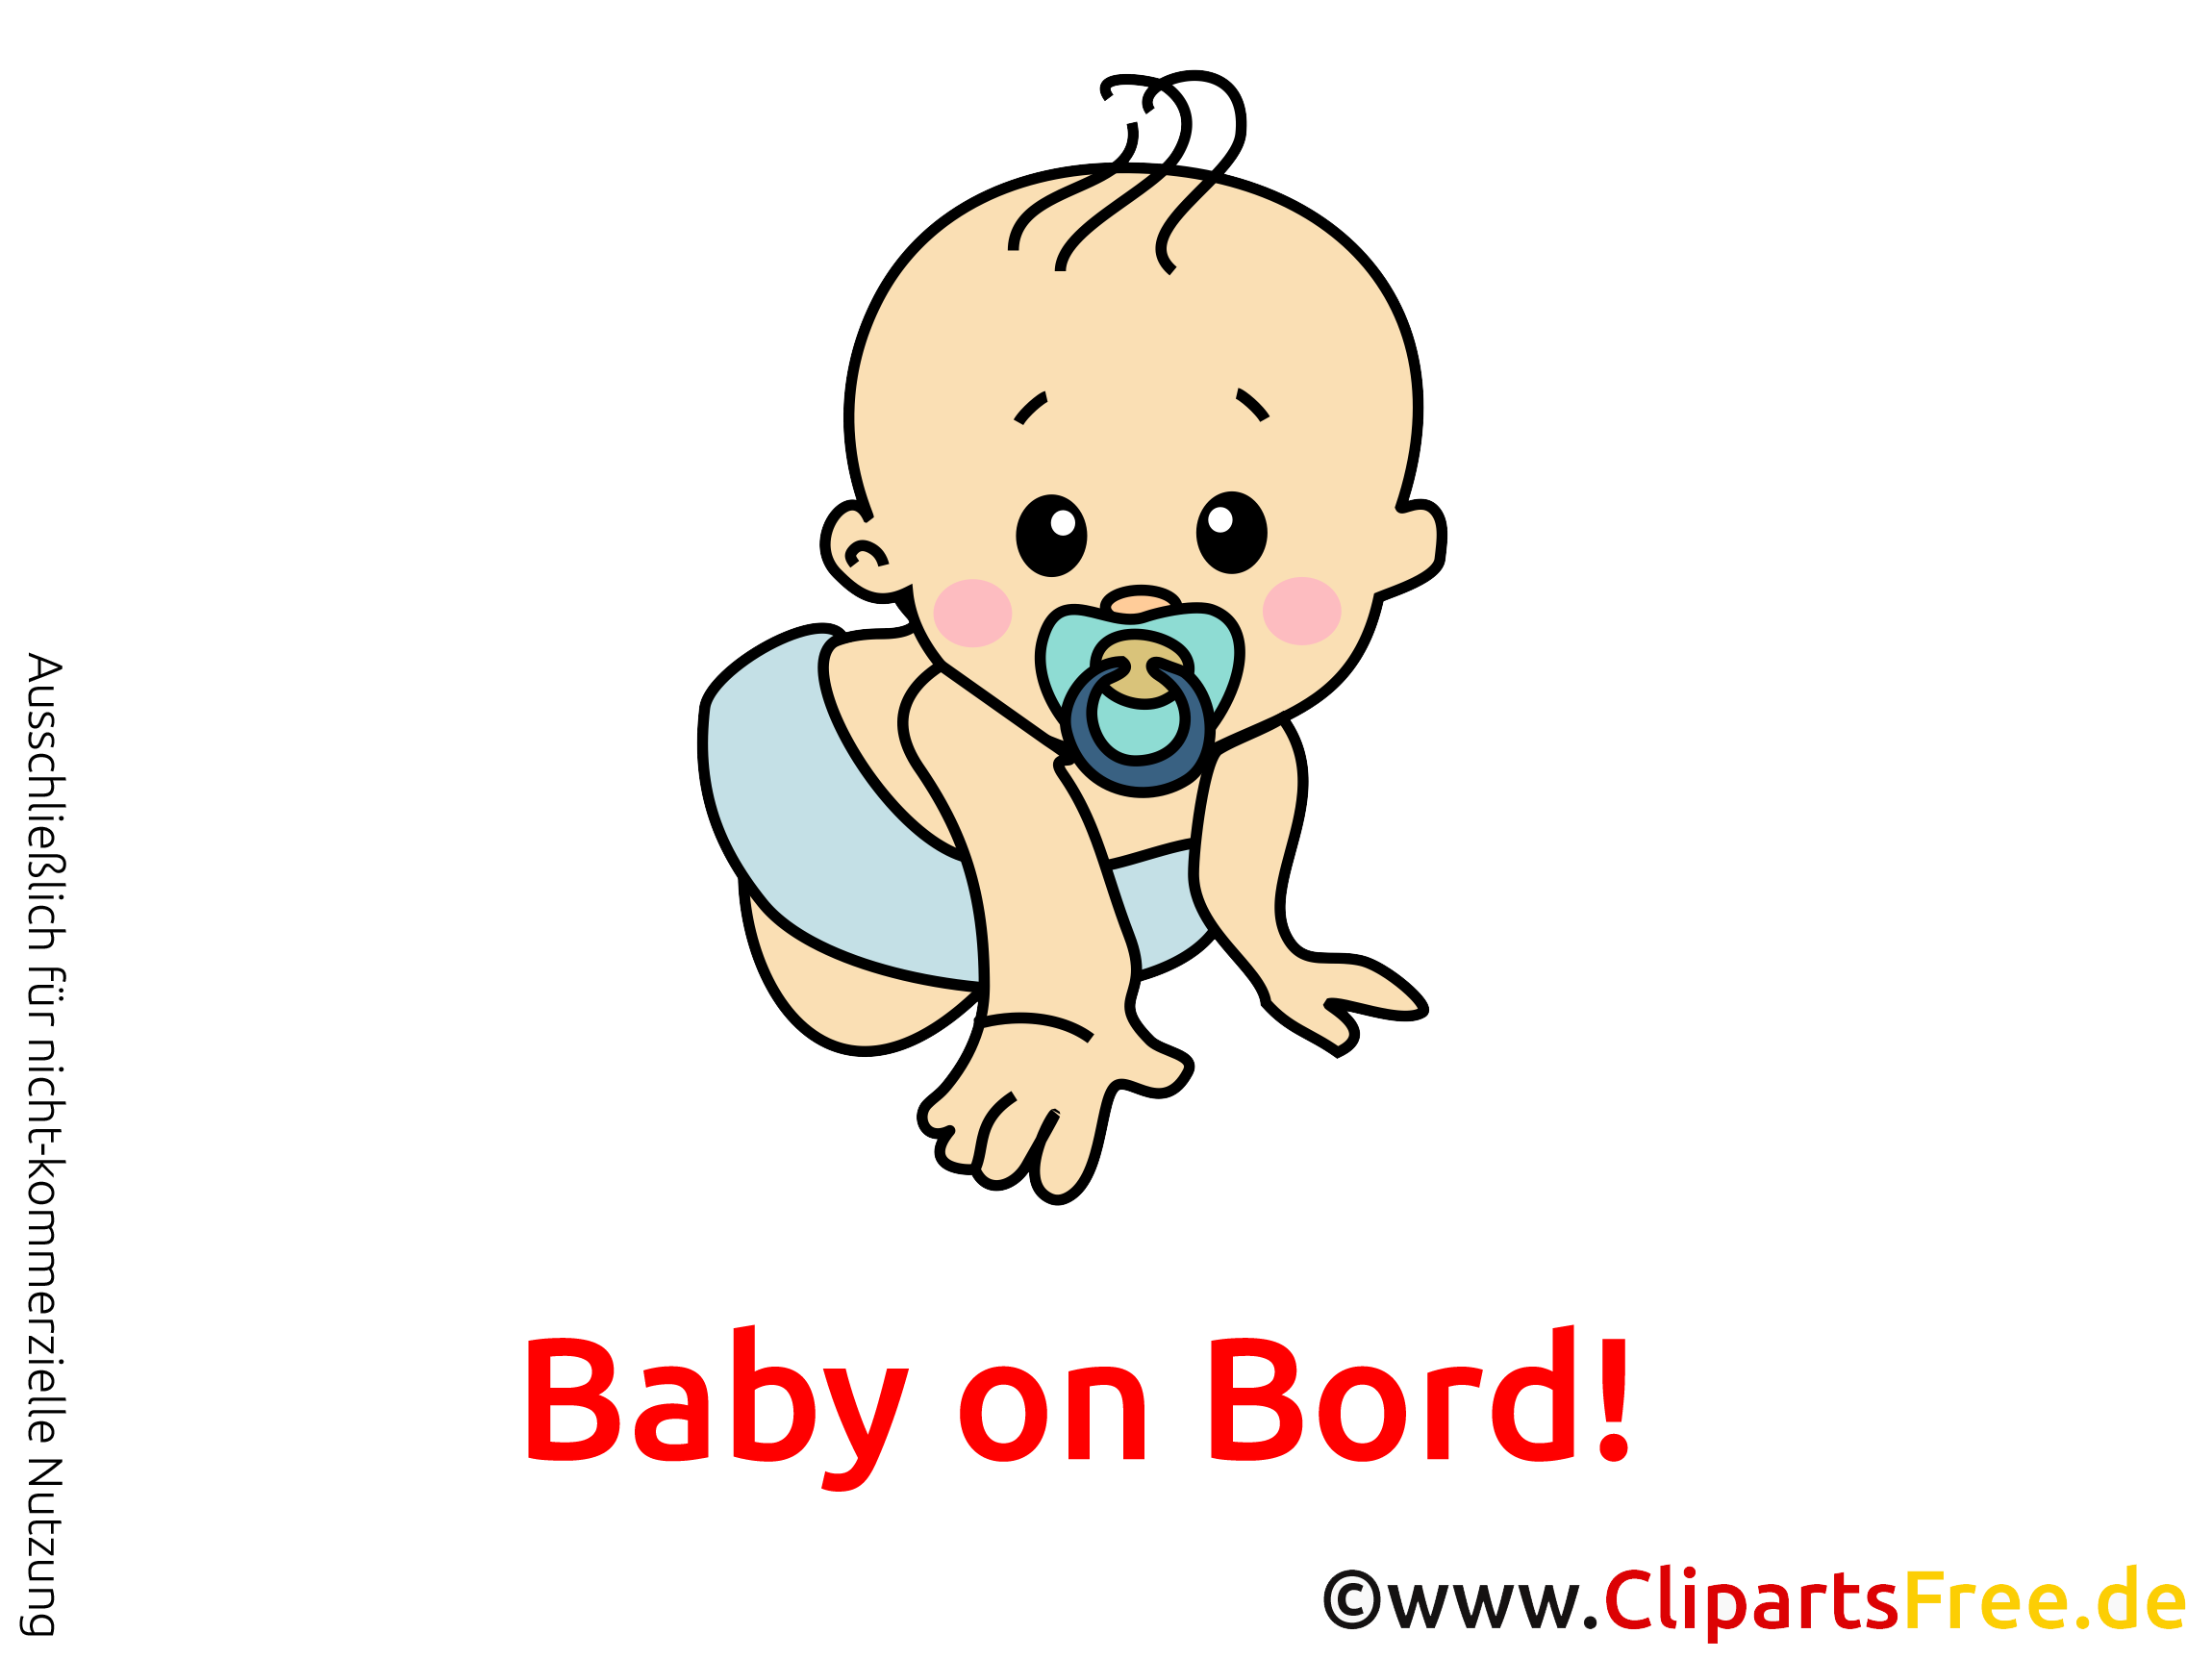 clipart baby on board - photo #9